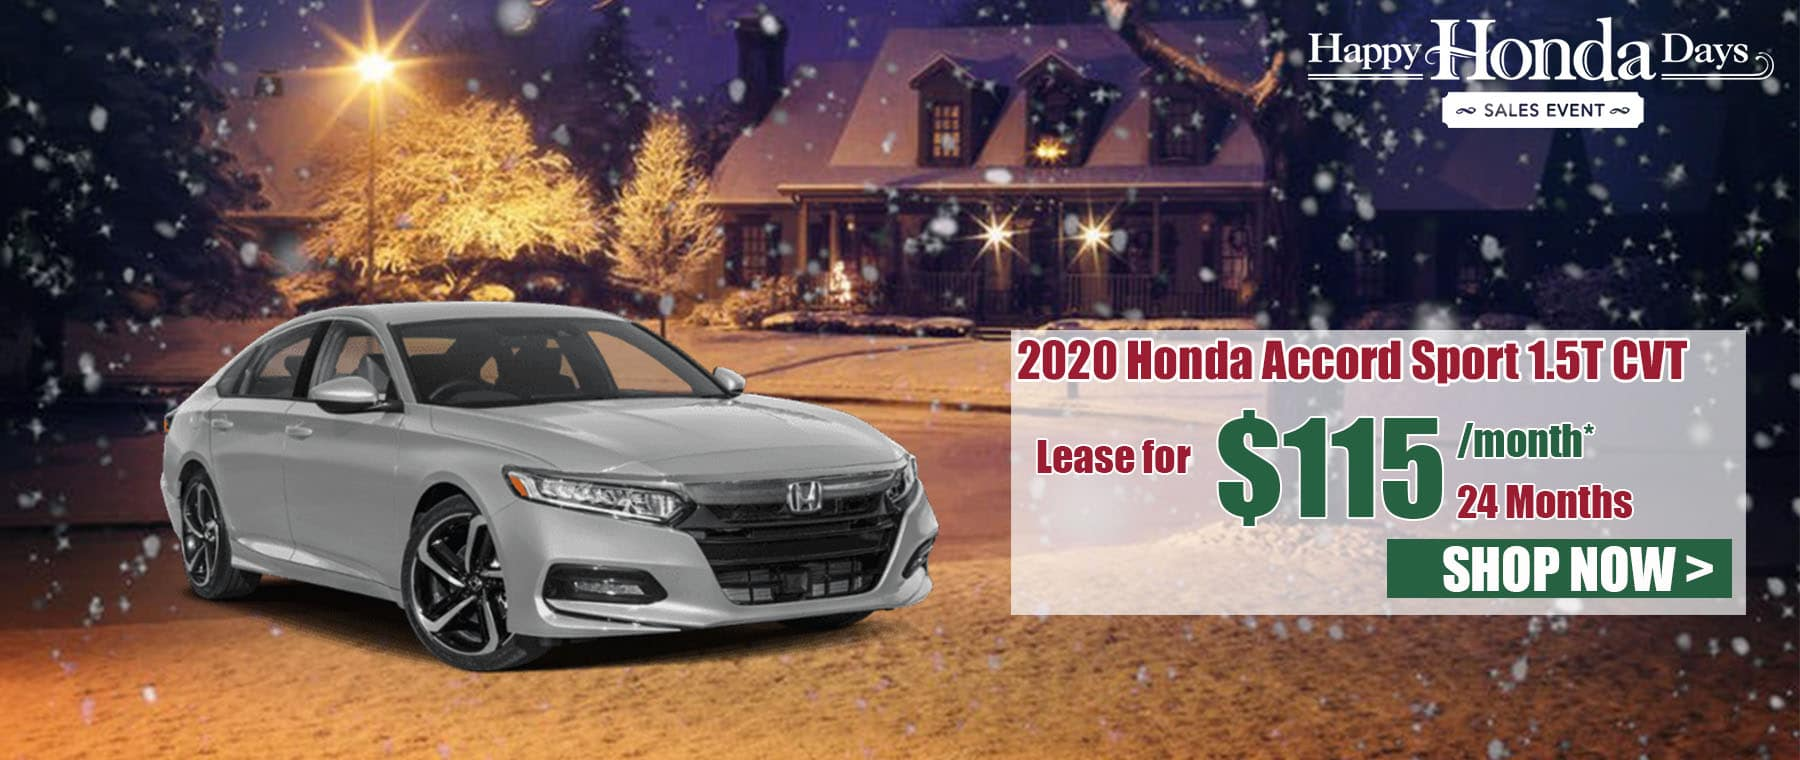 December 2020 Accord